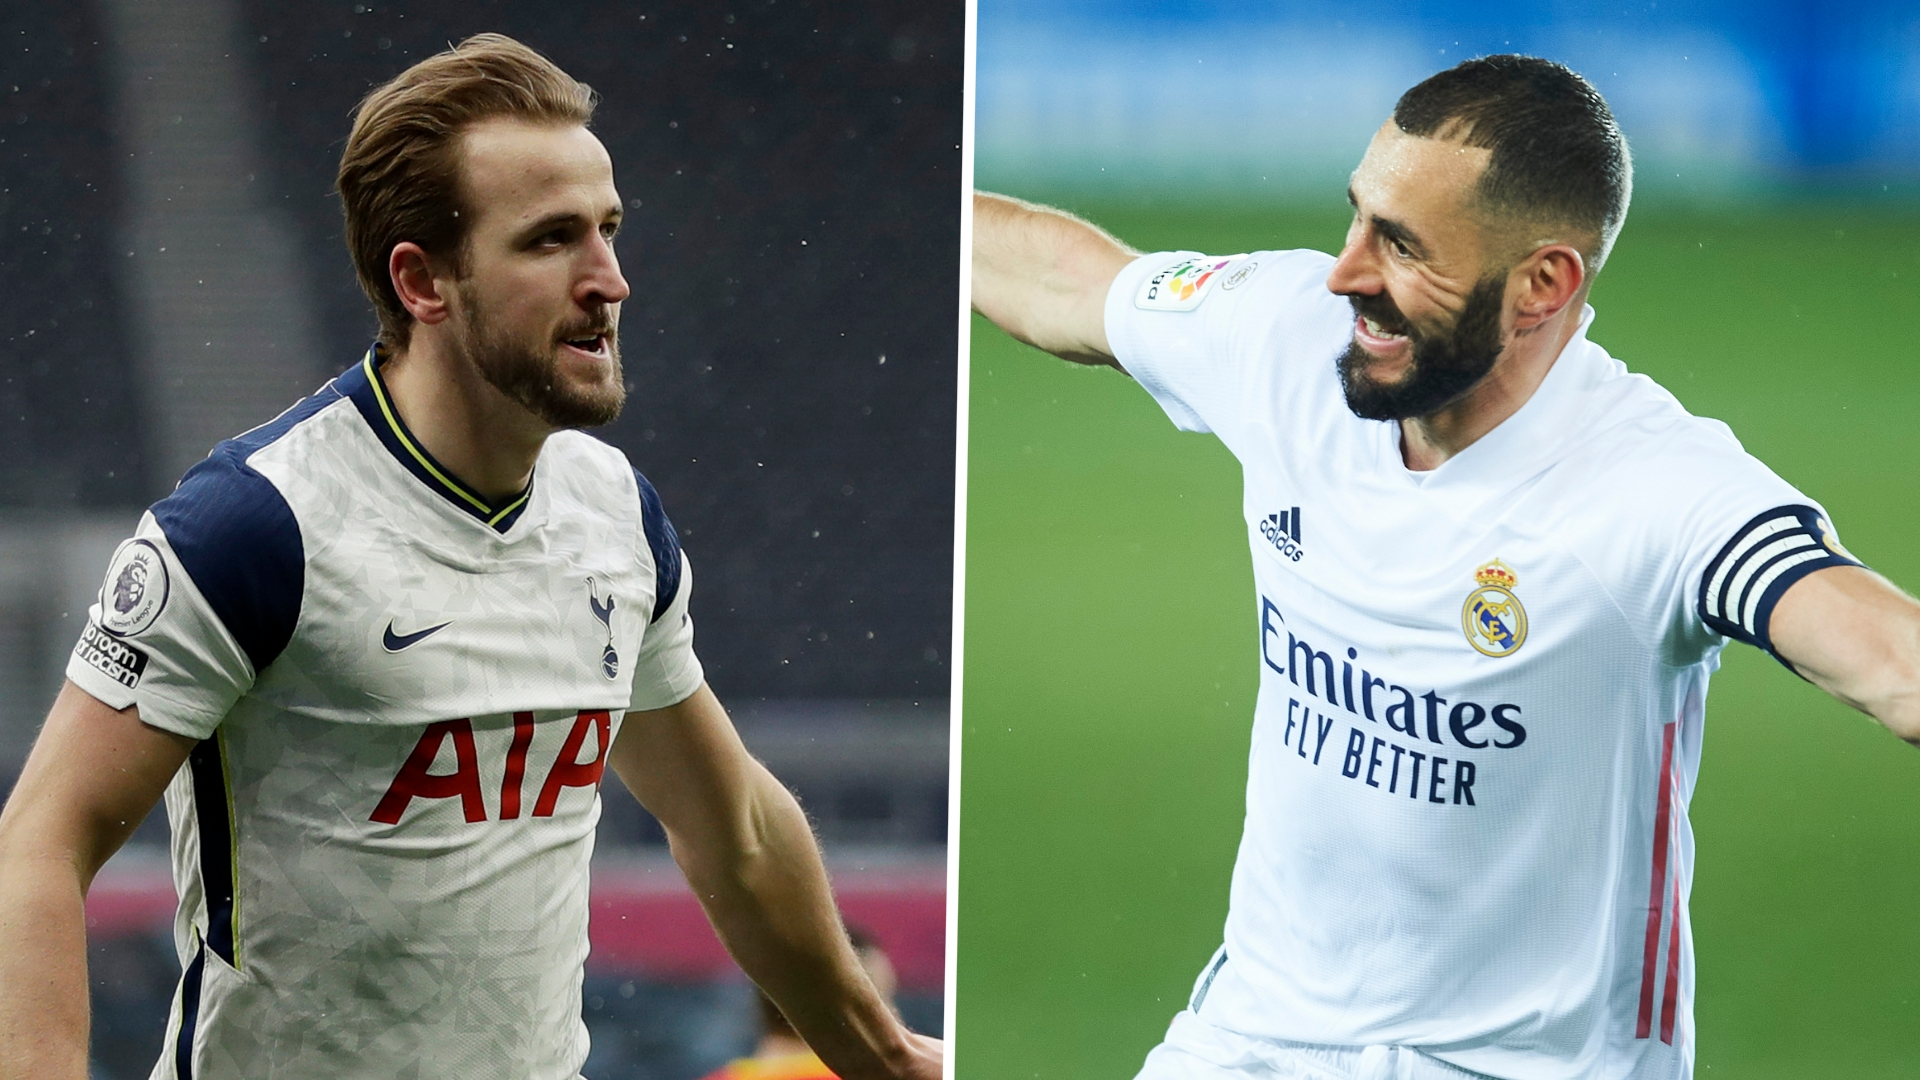 Mourinho sees Kane emulating Real Madrid star Benzema in 'nine-a-half' role at Tottenham